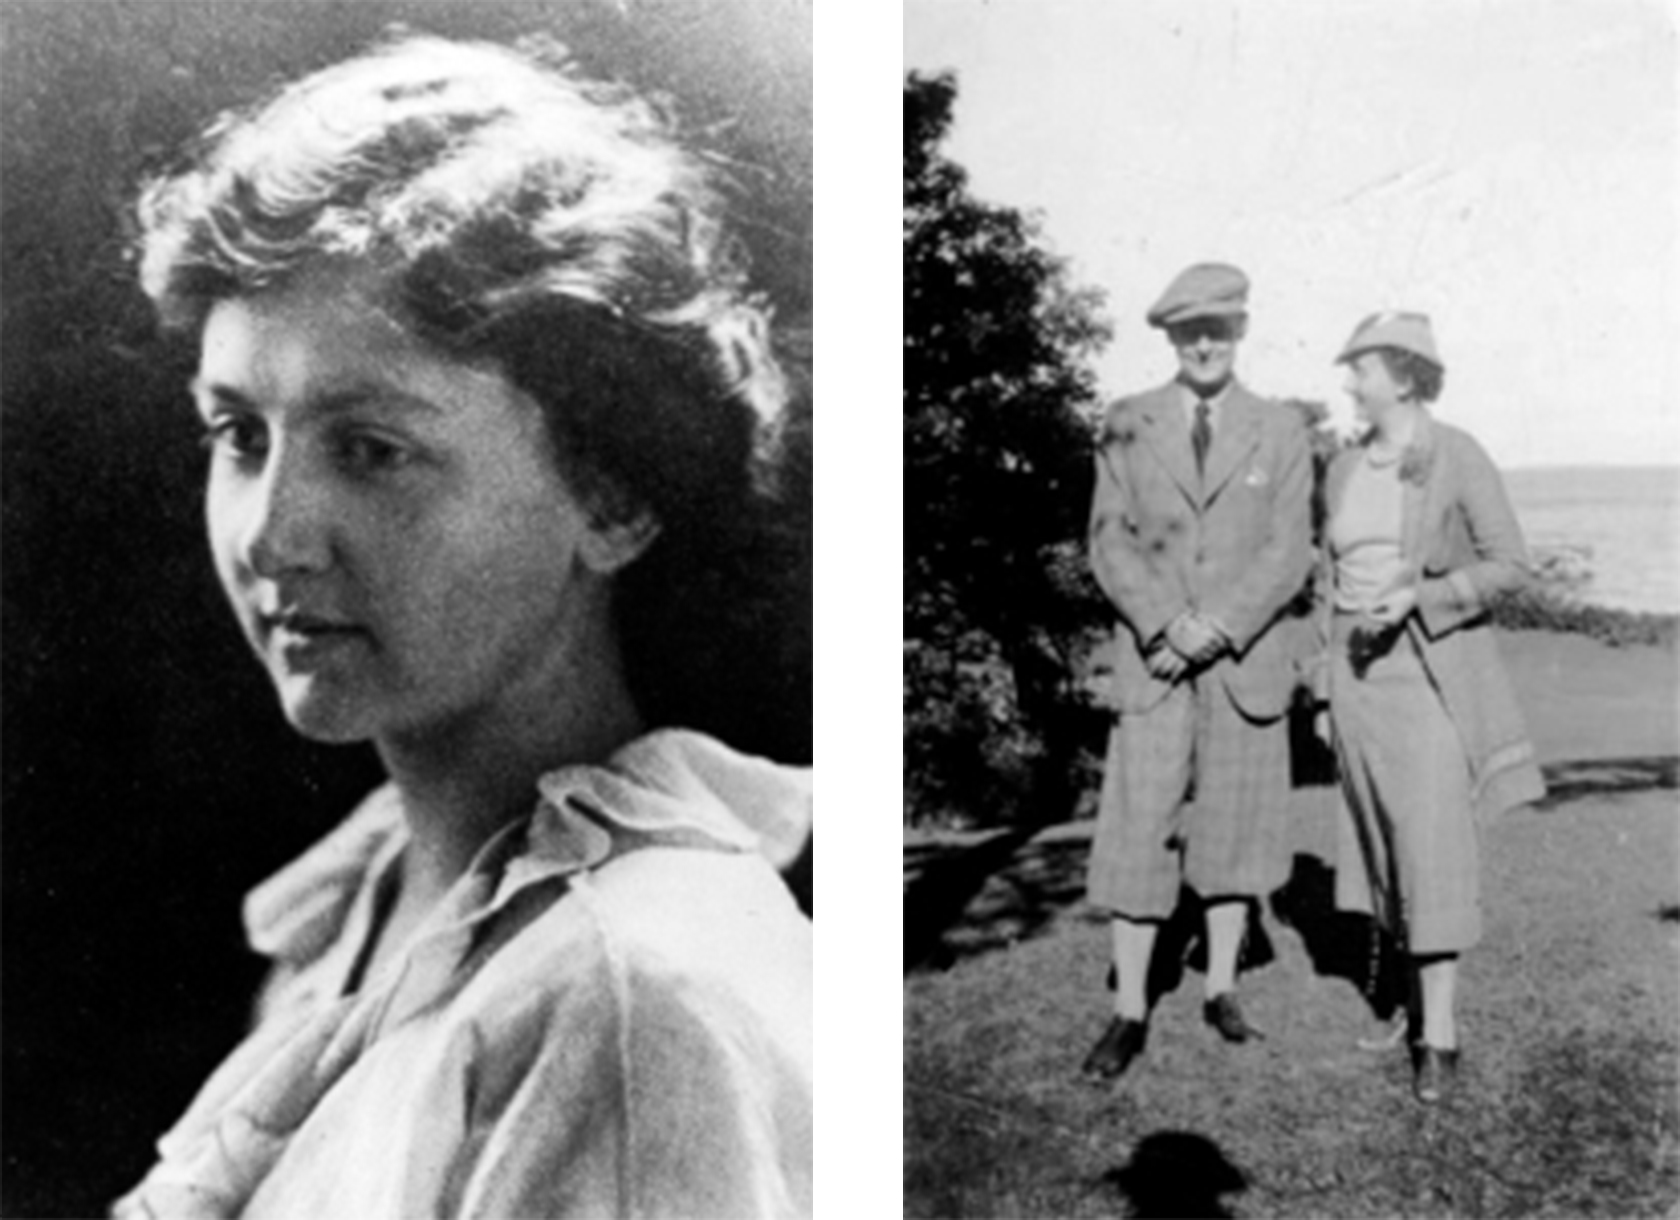 A black and white portrait photo of a white woman with short hair, and a black and white photo of a white man and woman walking together outside.